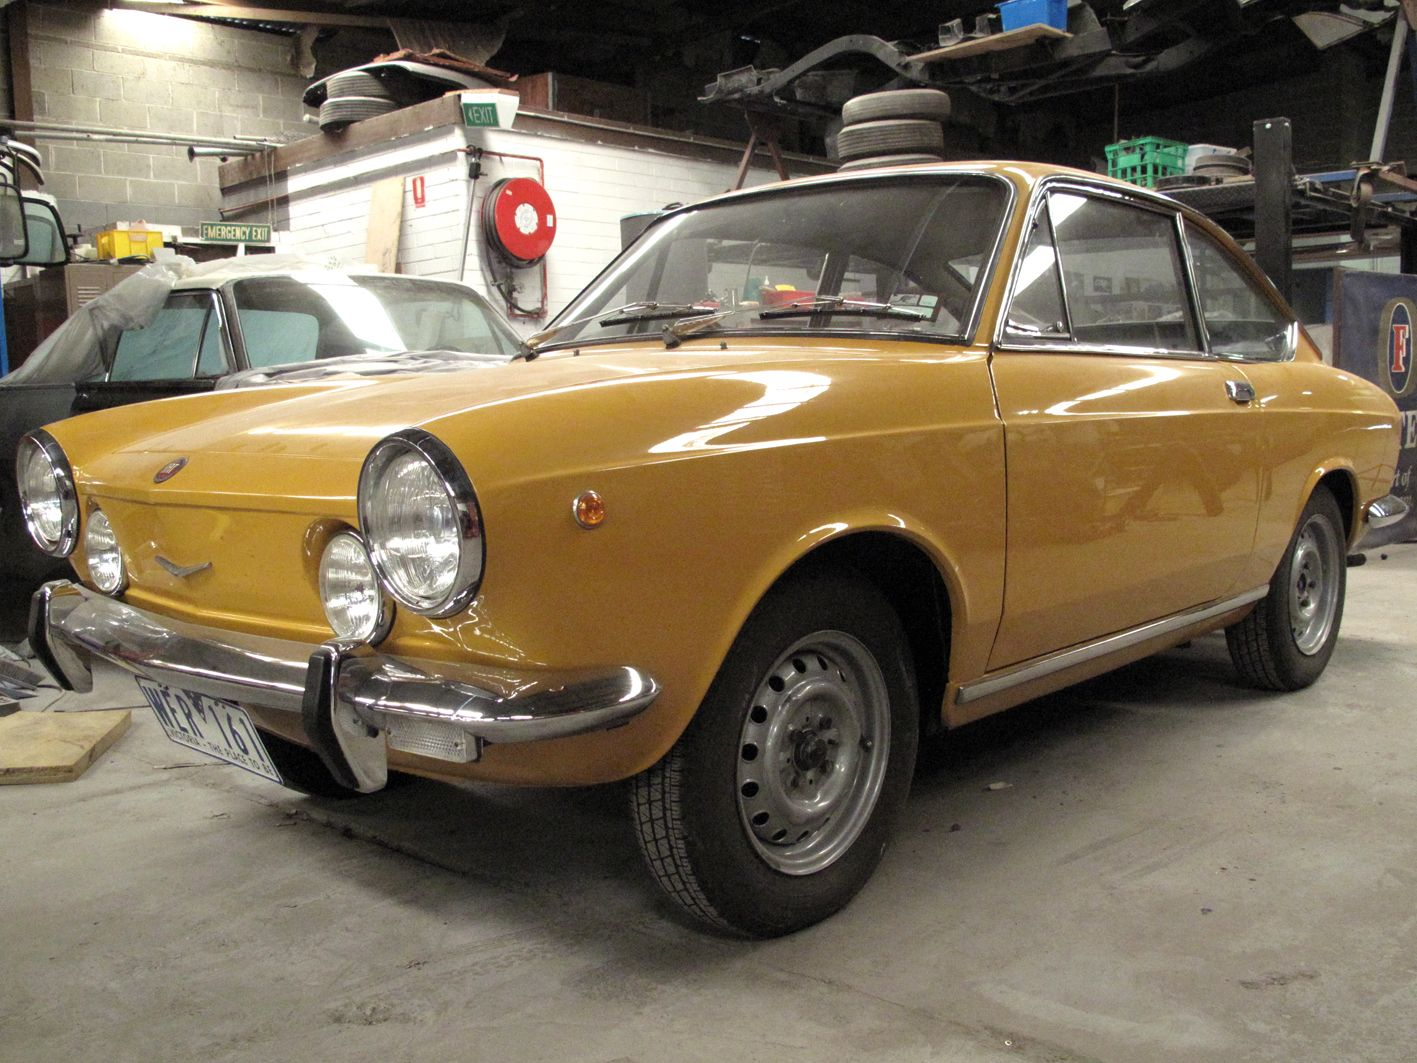 Fiat 850 Sport Coupe Yahoo Search Results Fiat 850 Sport Coupe